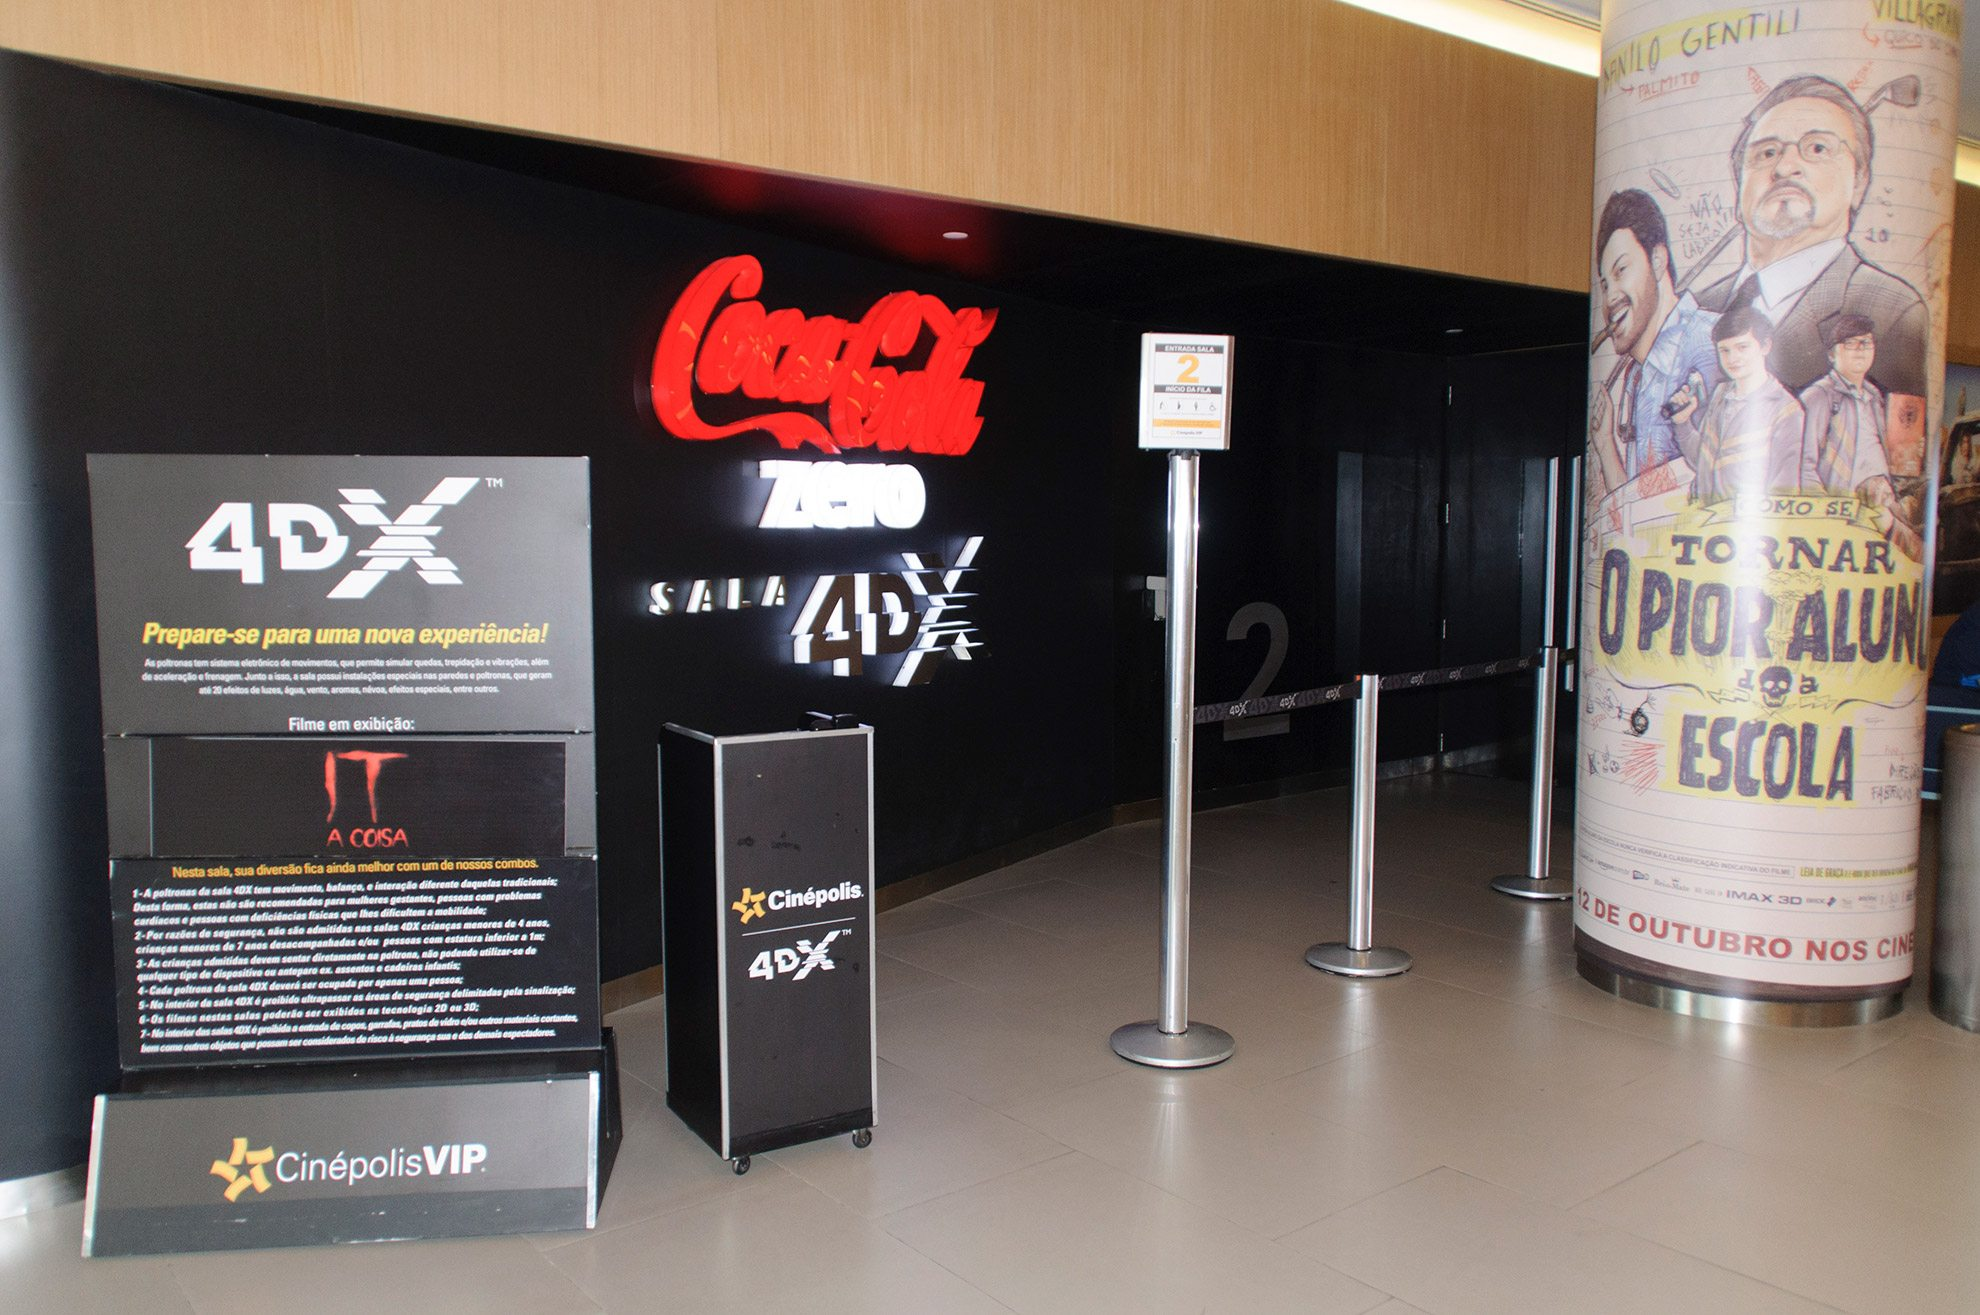 The 4DX Auditorium at the Cinépolis JK Iguatemi in São Paulo, Brazil